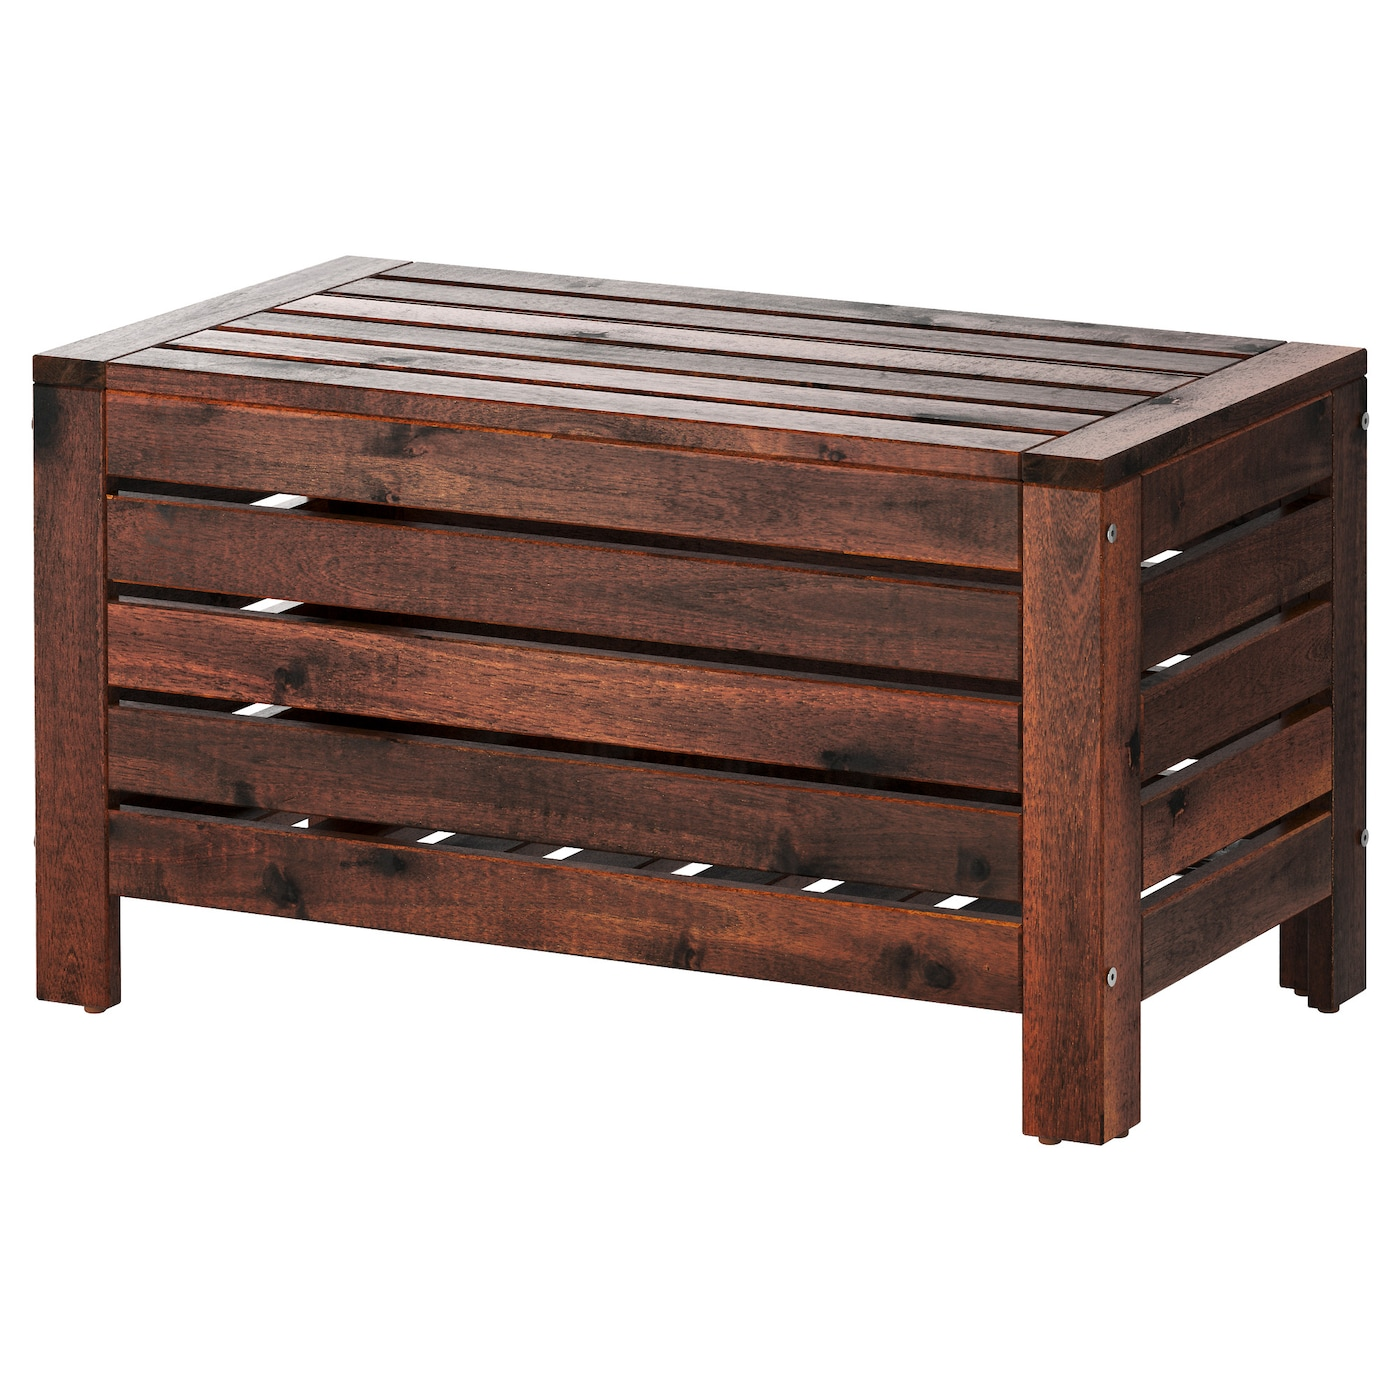 Picture of: Applaro Storage Bench Outdoor Brown Brown Stained Ikea